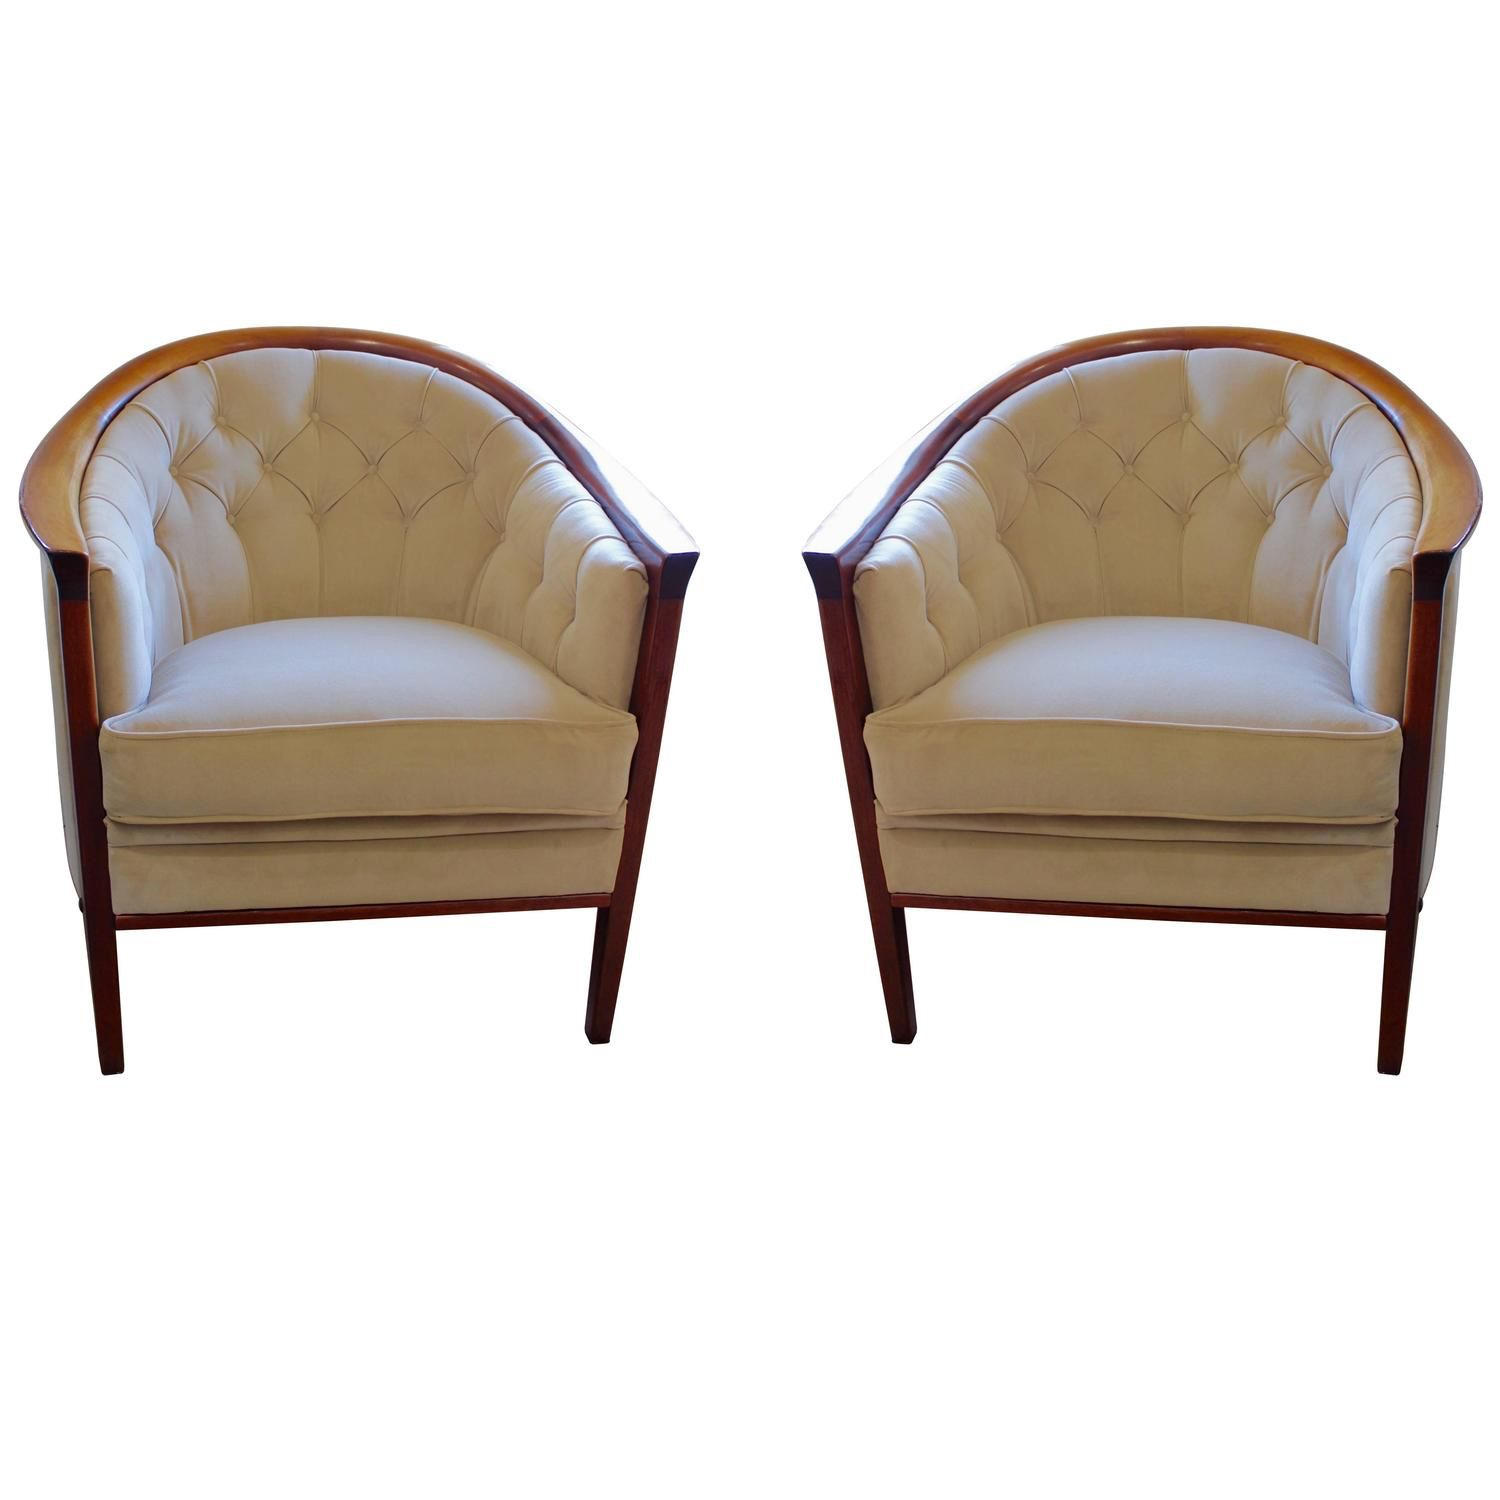 Antique lounge chairs - Pair Of Scandinavian Modern Tub Chairs By Bertil Fridhagen Circa 1960 See More Antique